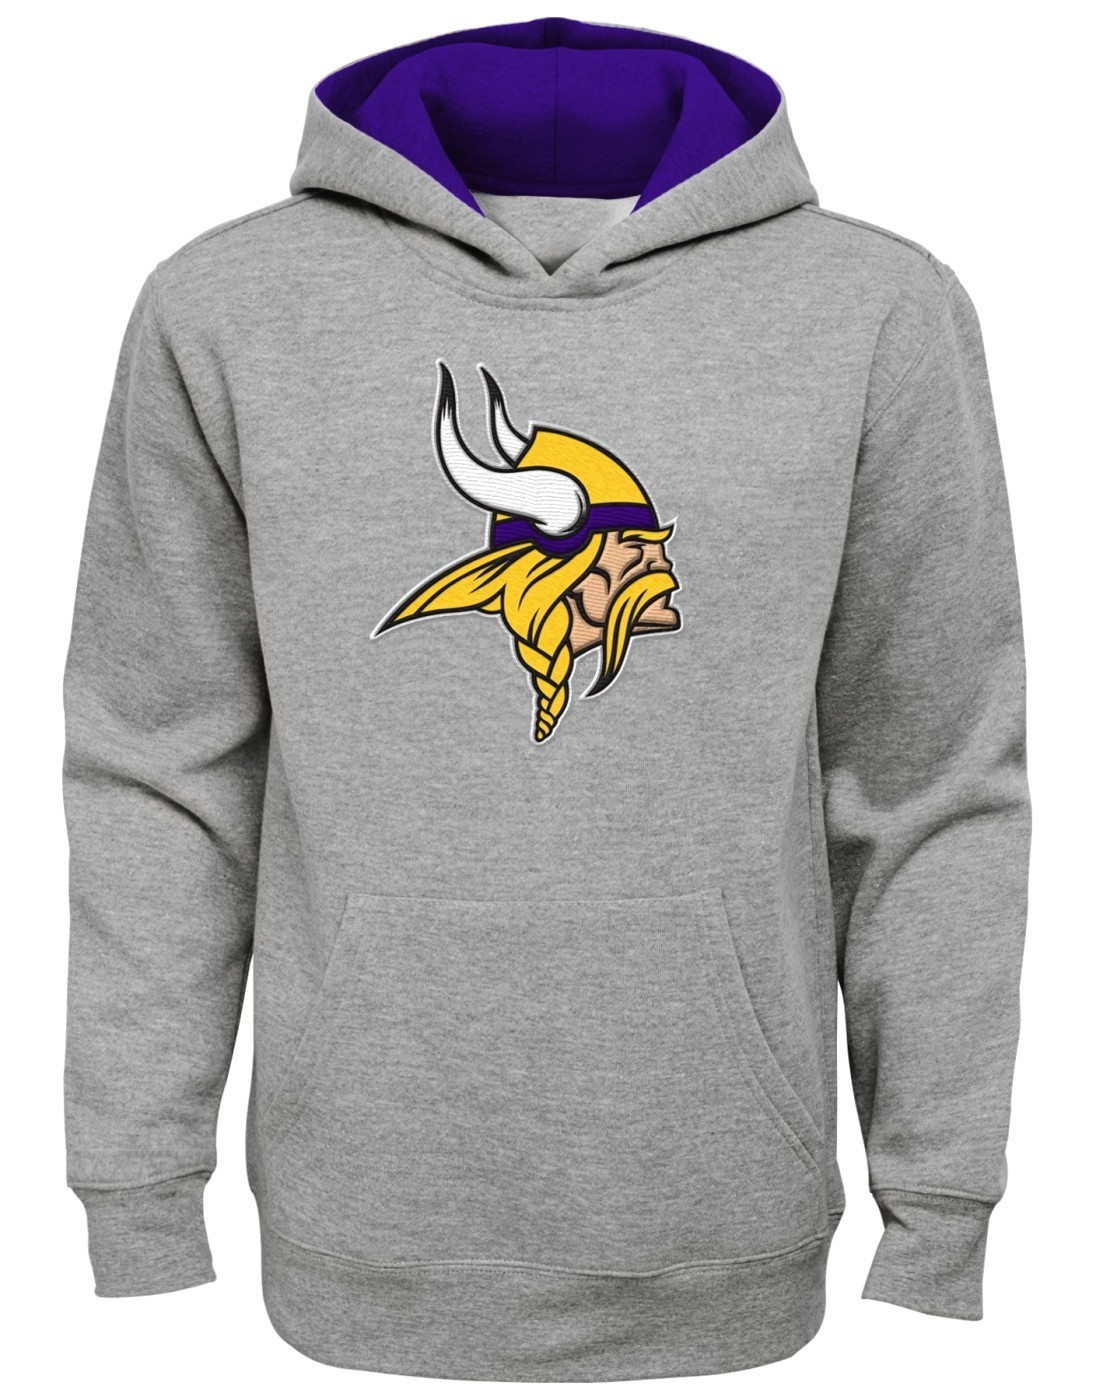 75682b5e Minnesota Vikings Youth NFL